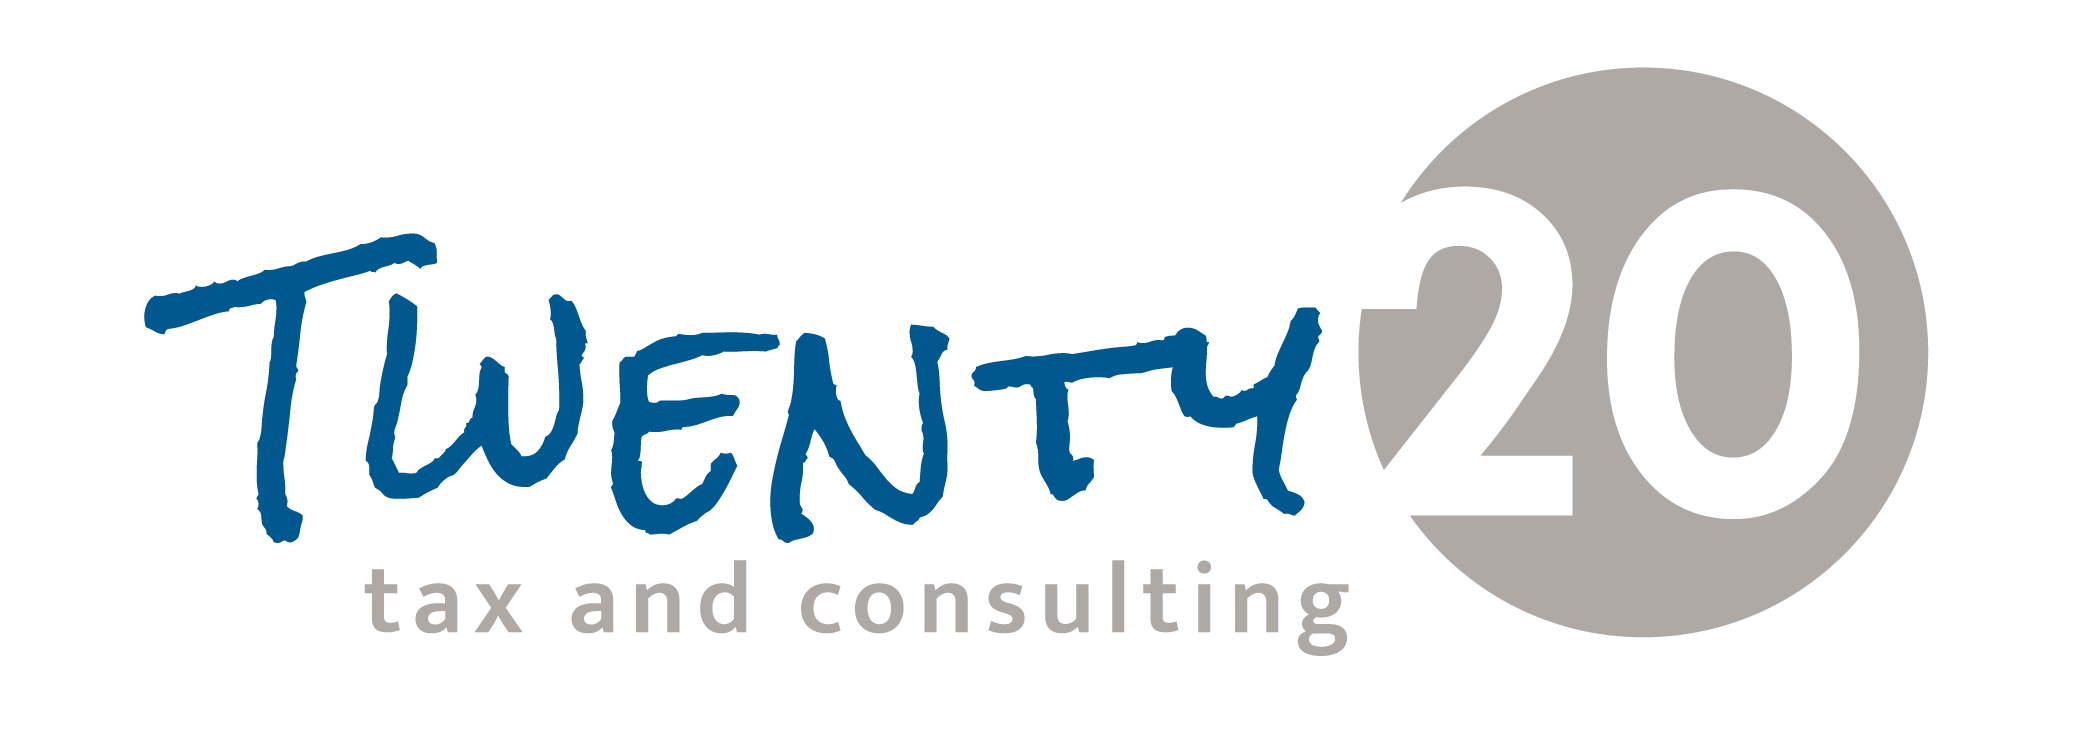 Twenty20 Tax and Consulting